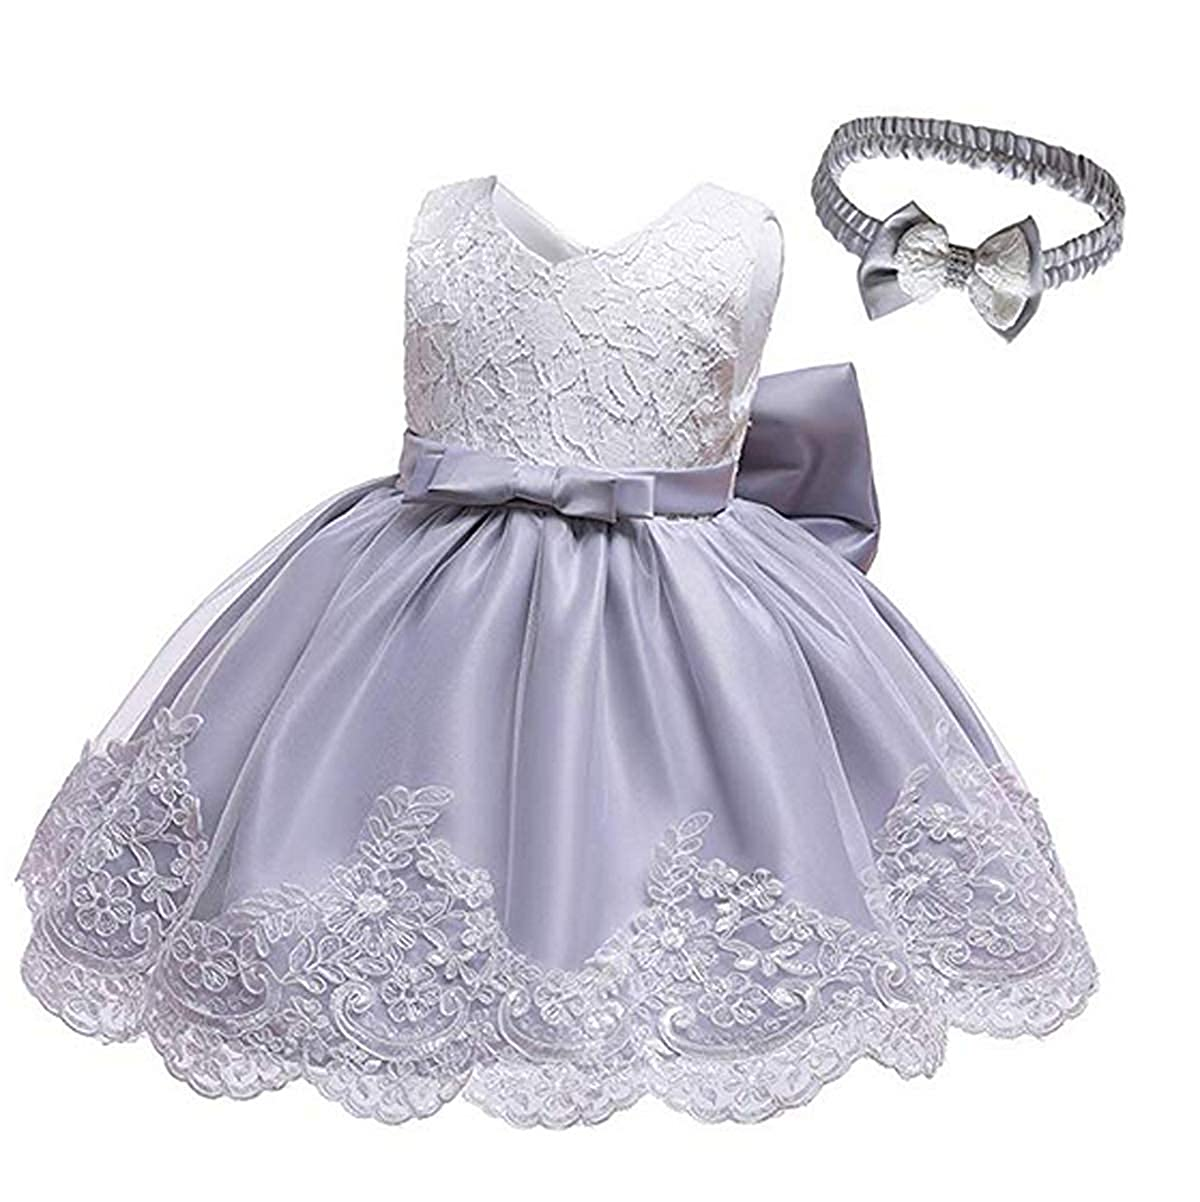 MysterLuna Baby Girls Formal Pageant Dress Sleeveless Lace Bowknot Princess Tutu Gown